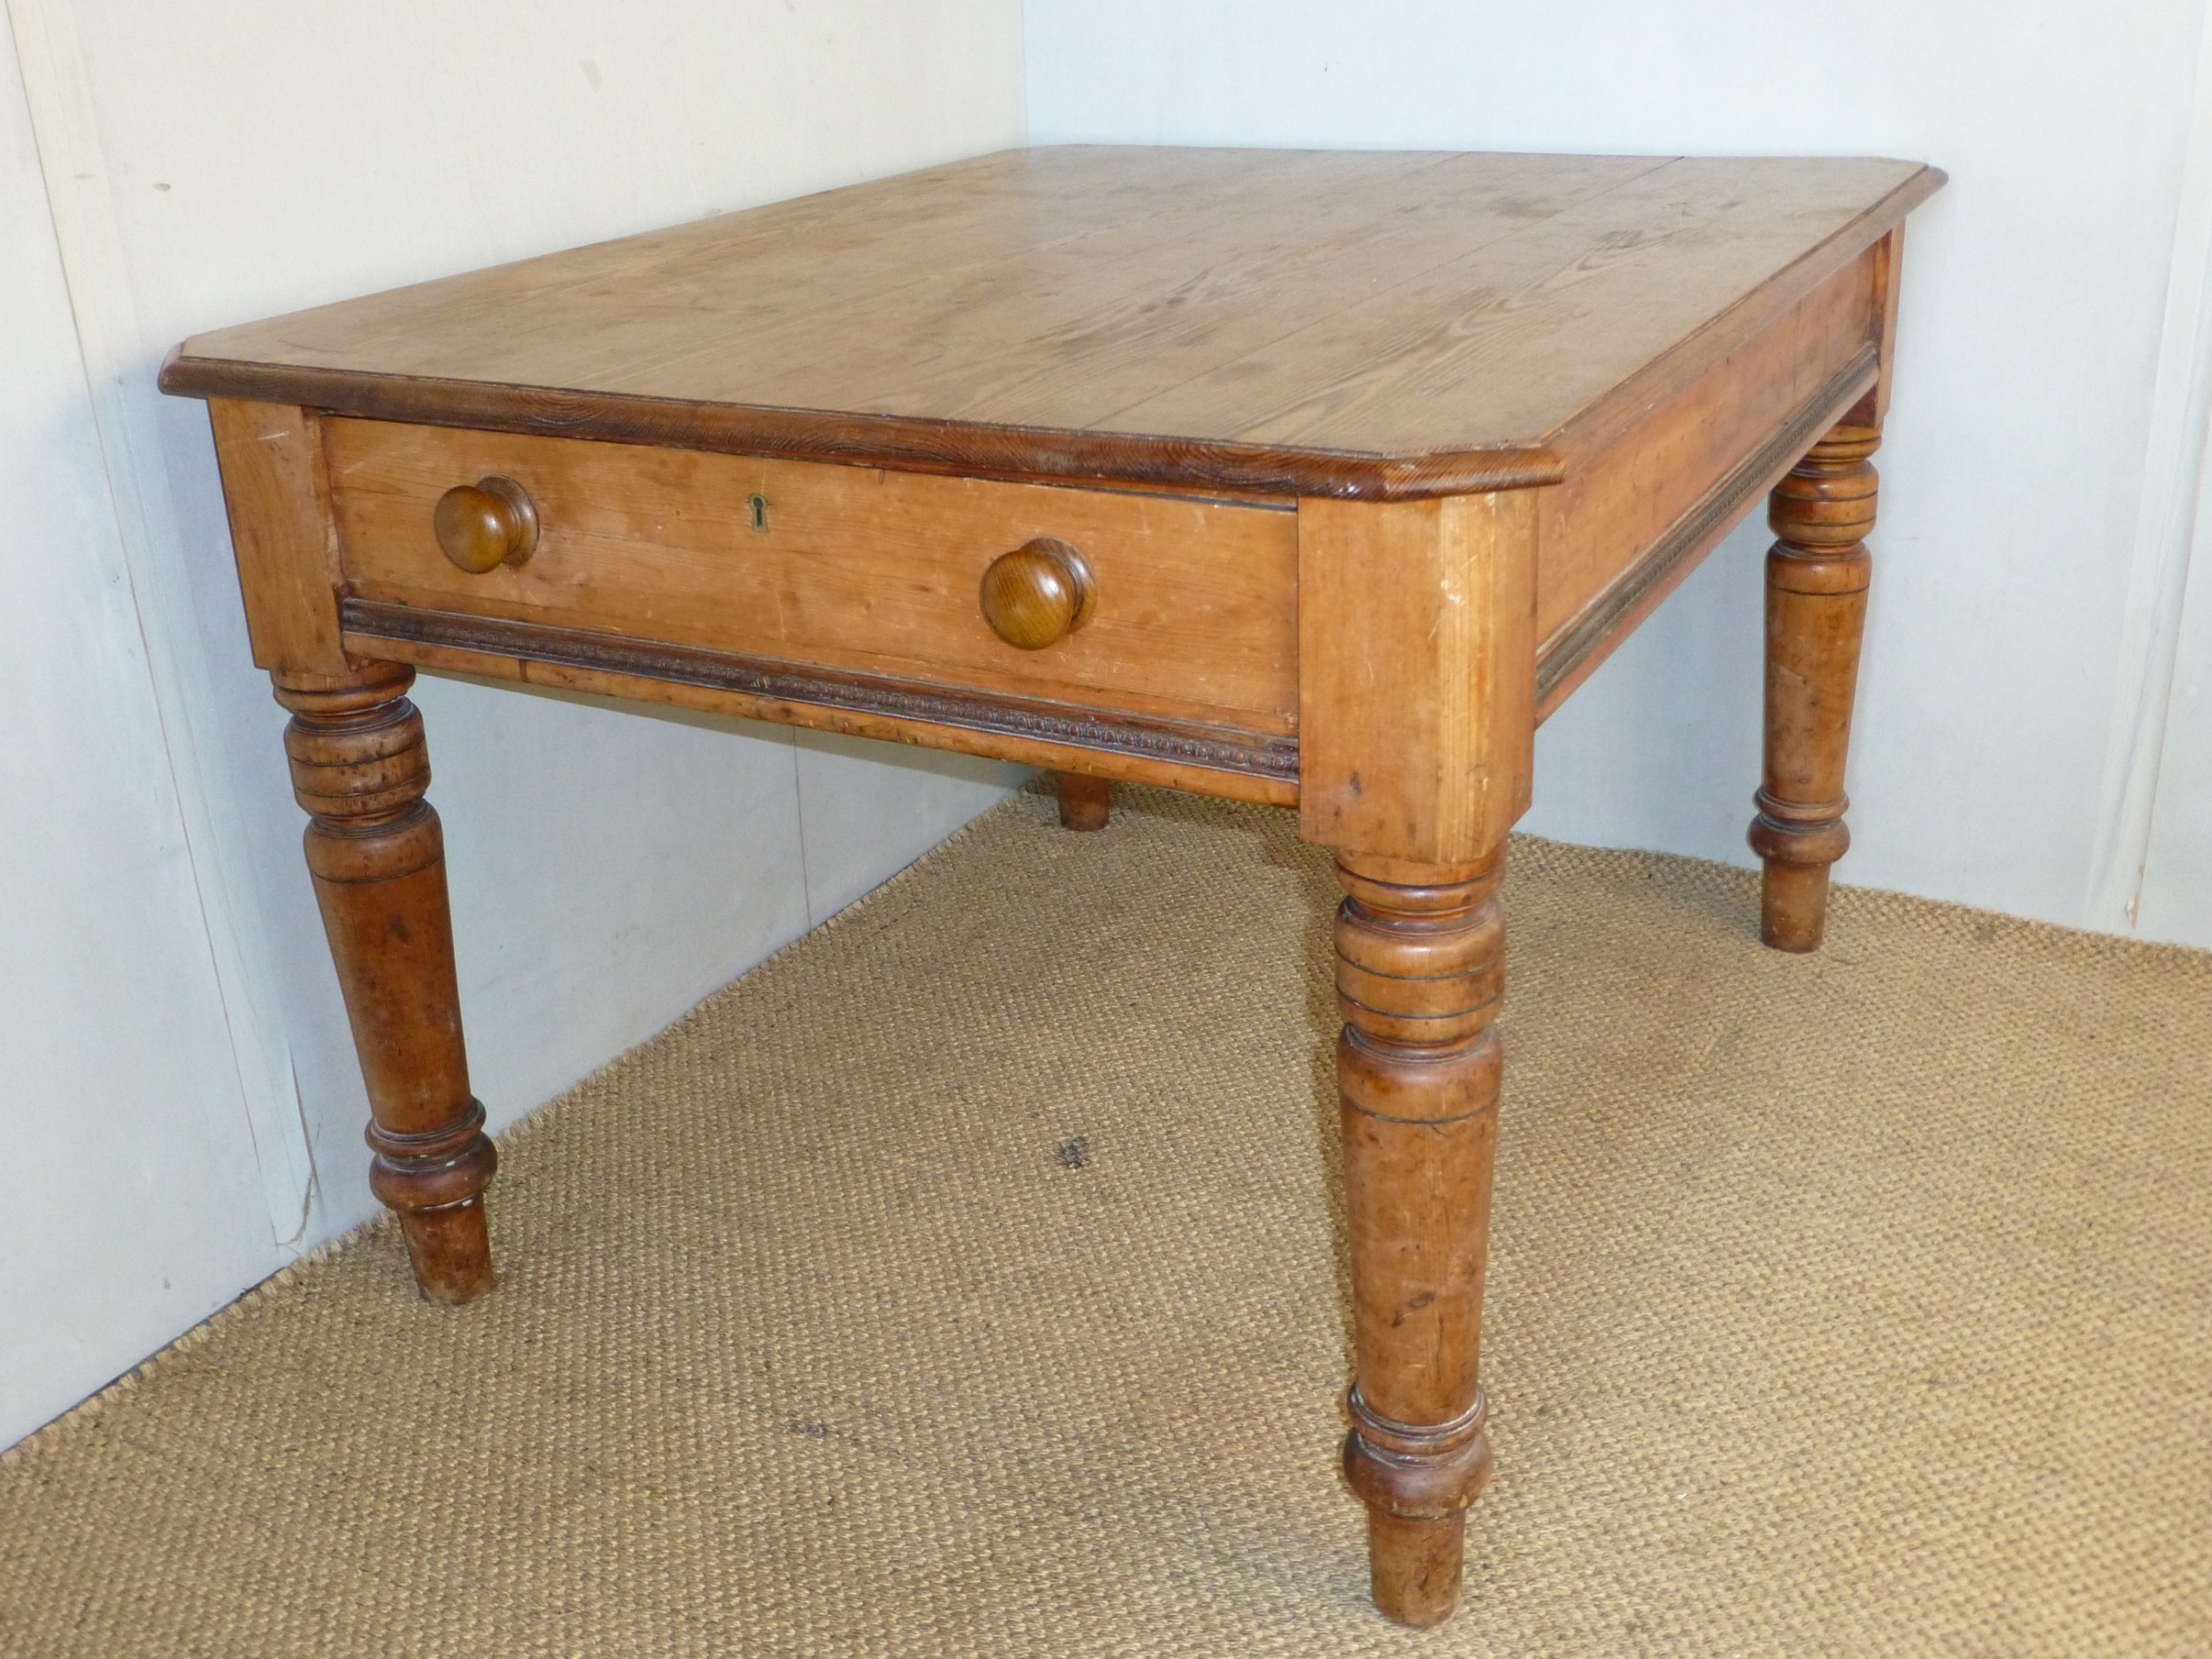 welsh pine scrub top farmhouse kitchen dairy dining table